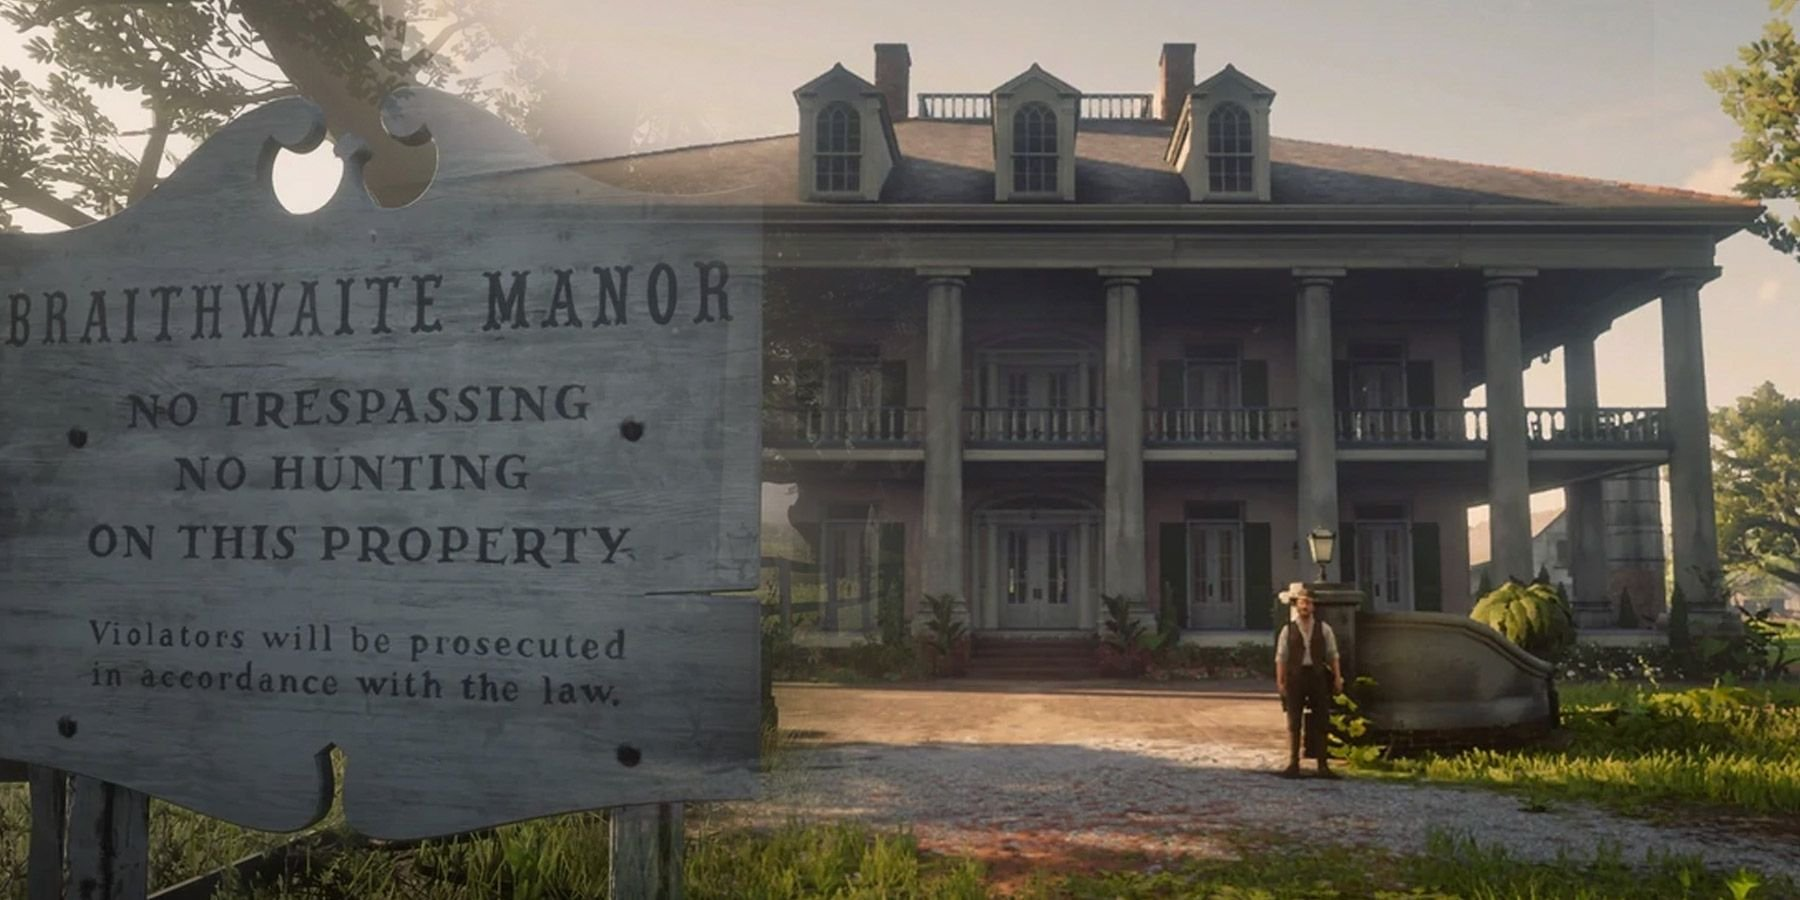 Red Dead Redemption 2's Real-Life Inspirations of Braithwaite Manor Explained